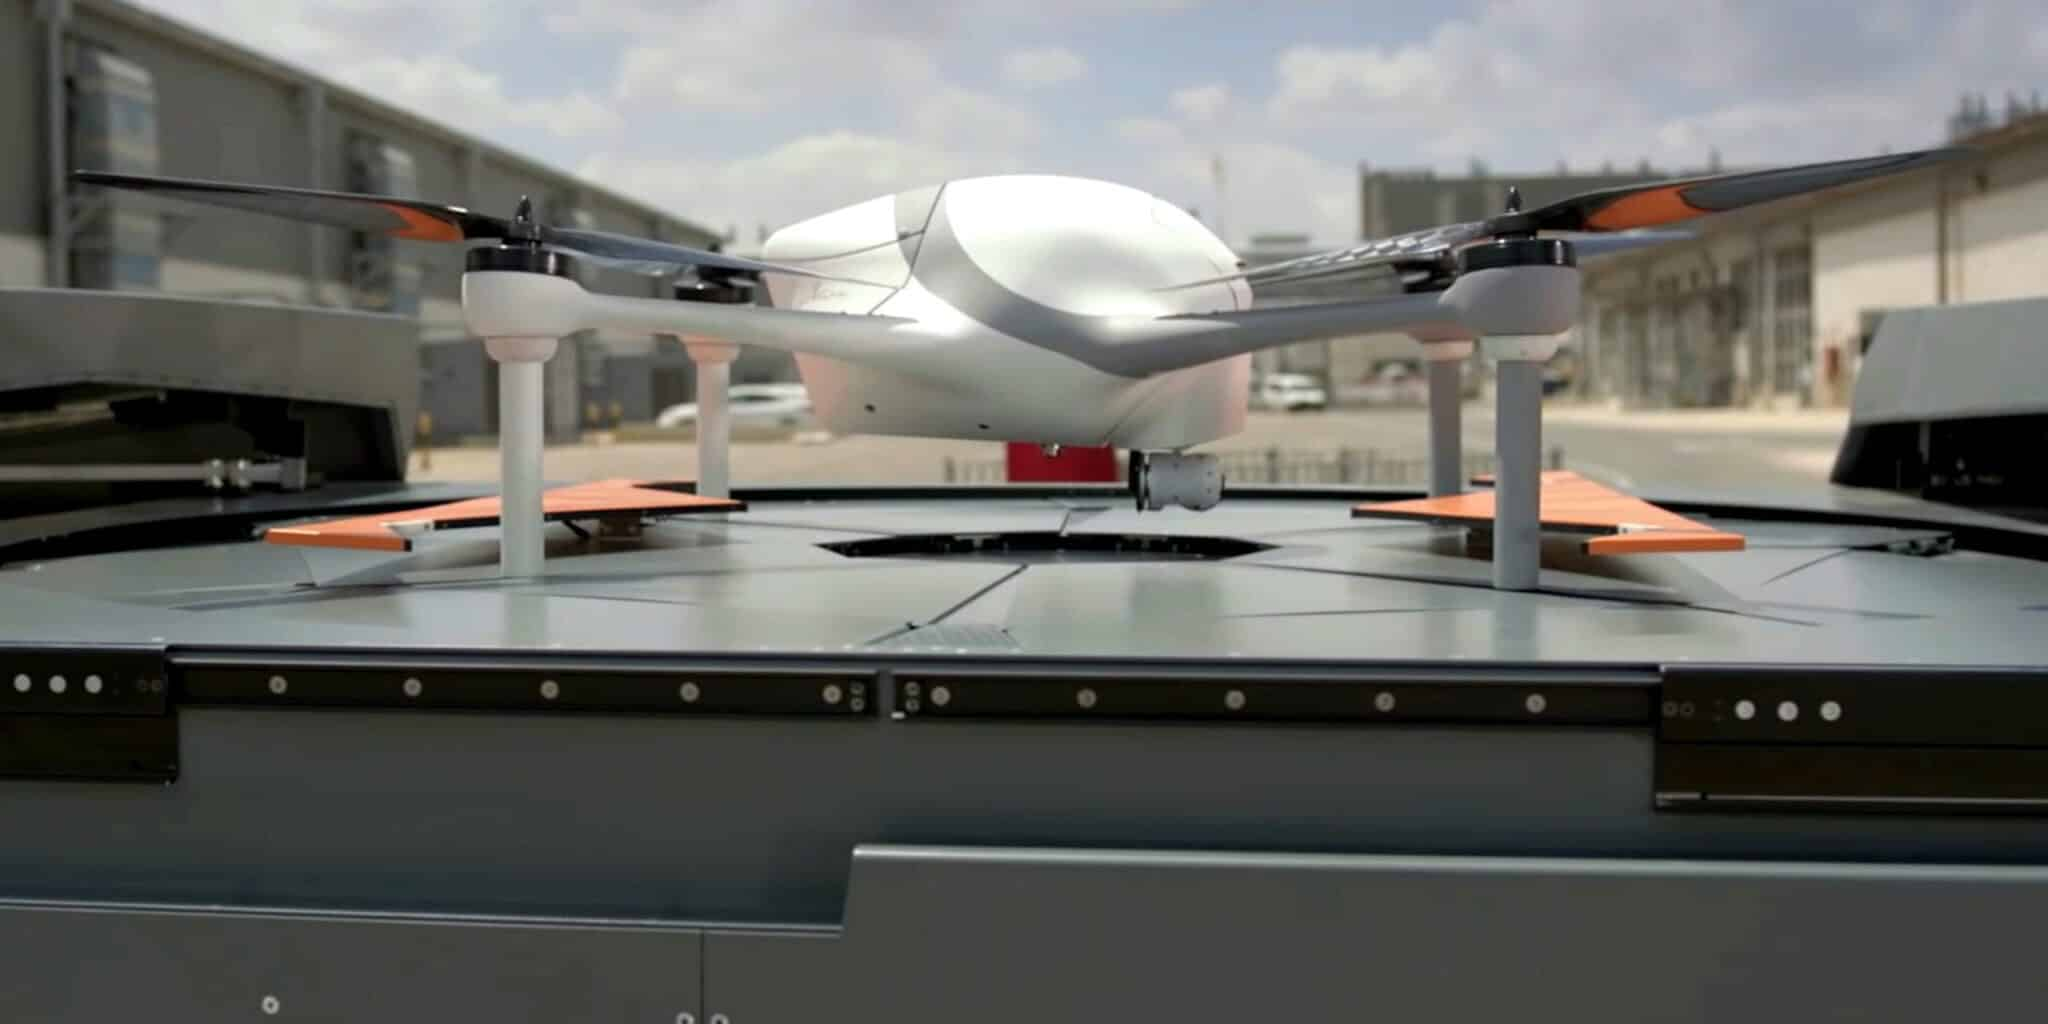 Airobotics receives FAA exemption for BVLOS drone flight during coronavirus lockdown